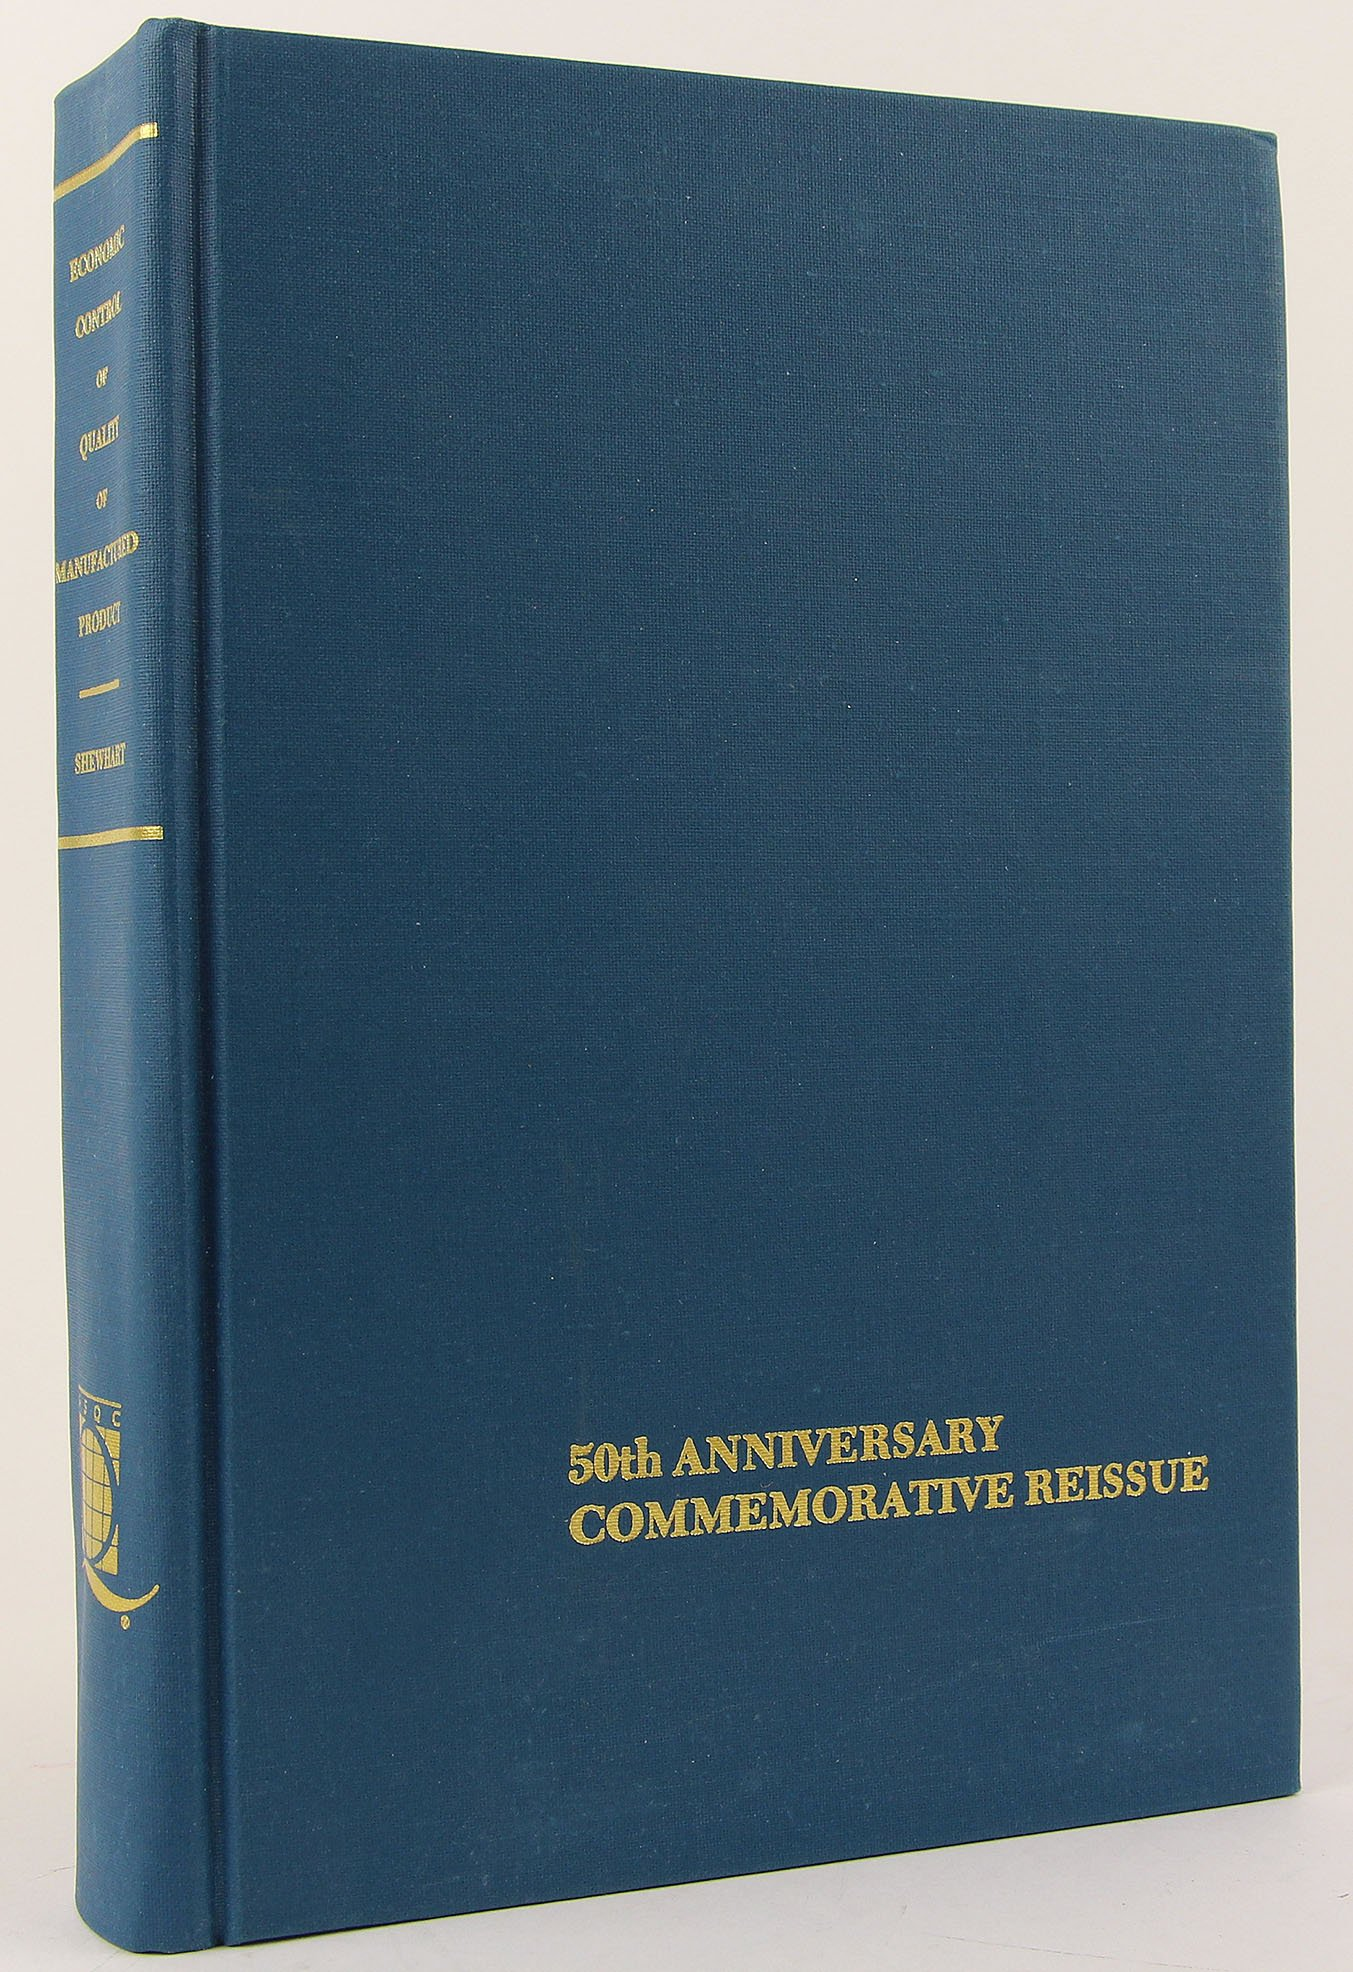 Economic Control of Quality of Manufactured Product (50th Anniversary Commemorative Reissue)